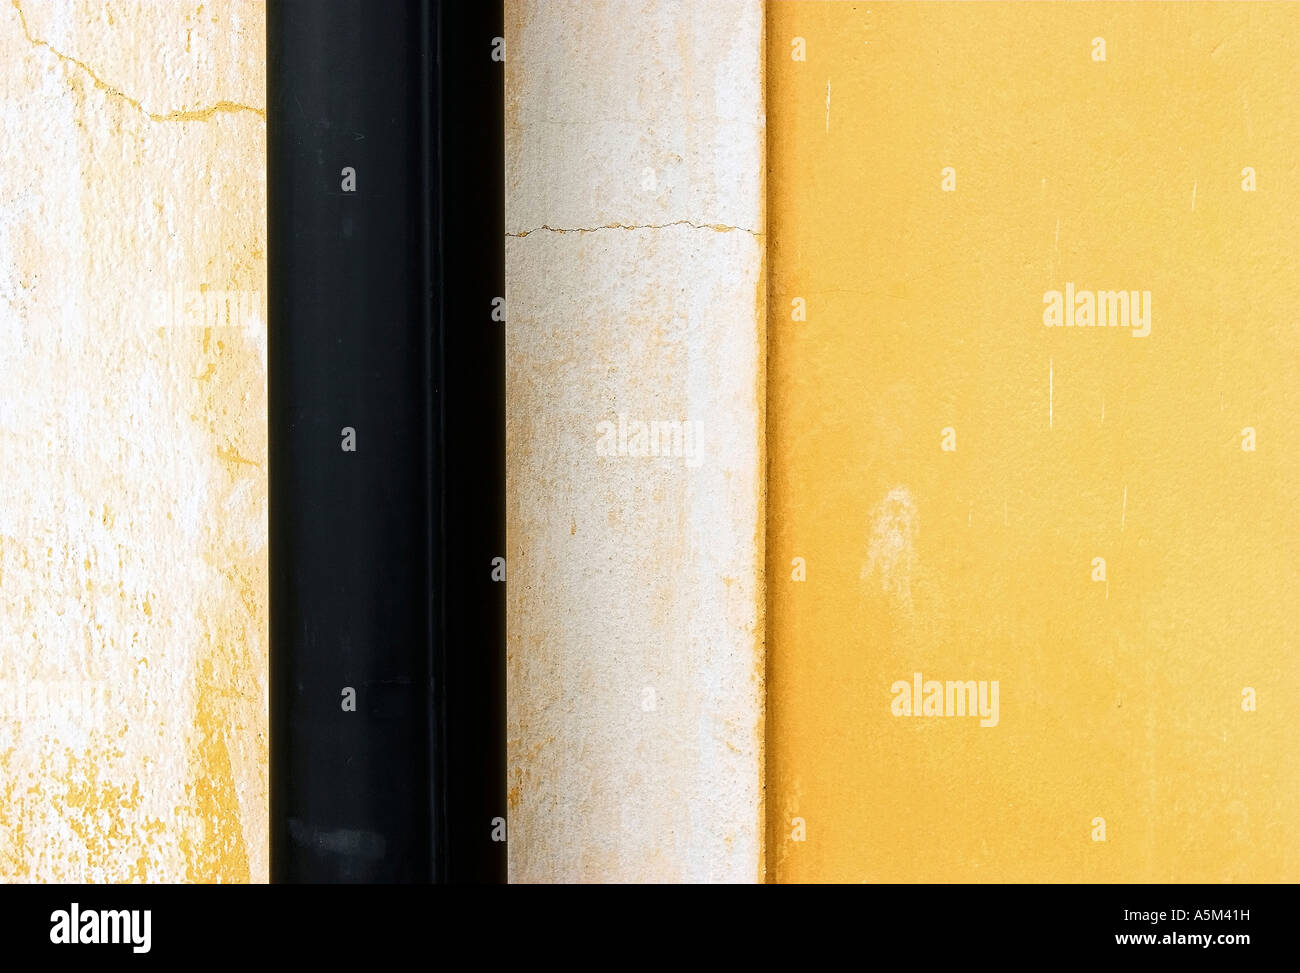 Abstract wall with crossing black drainpipe - Stock Image